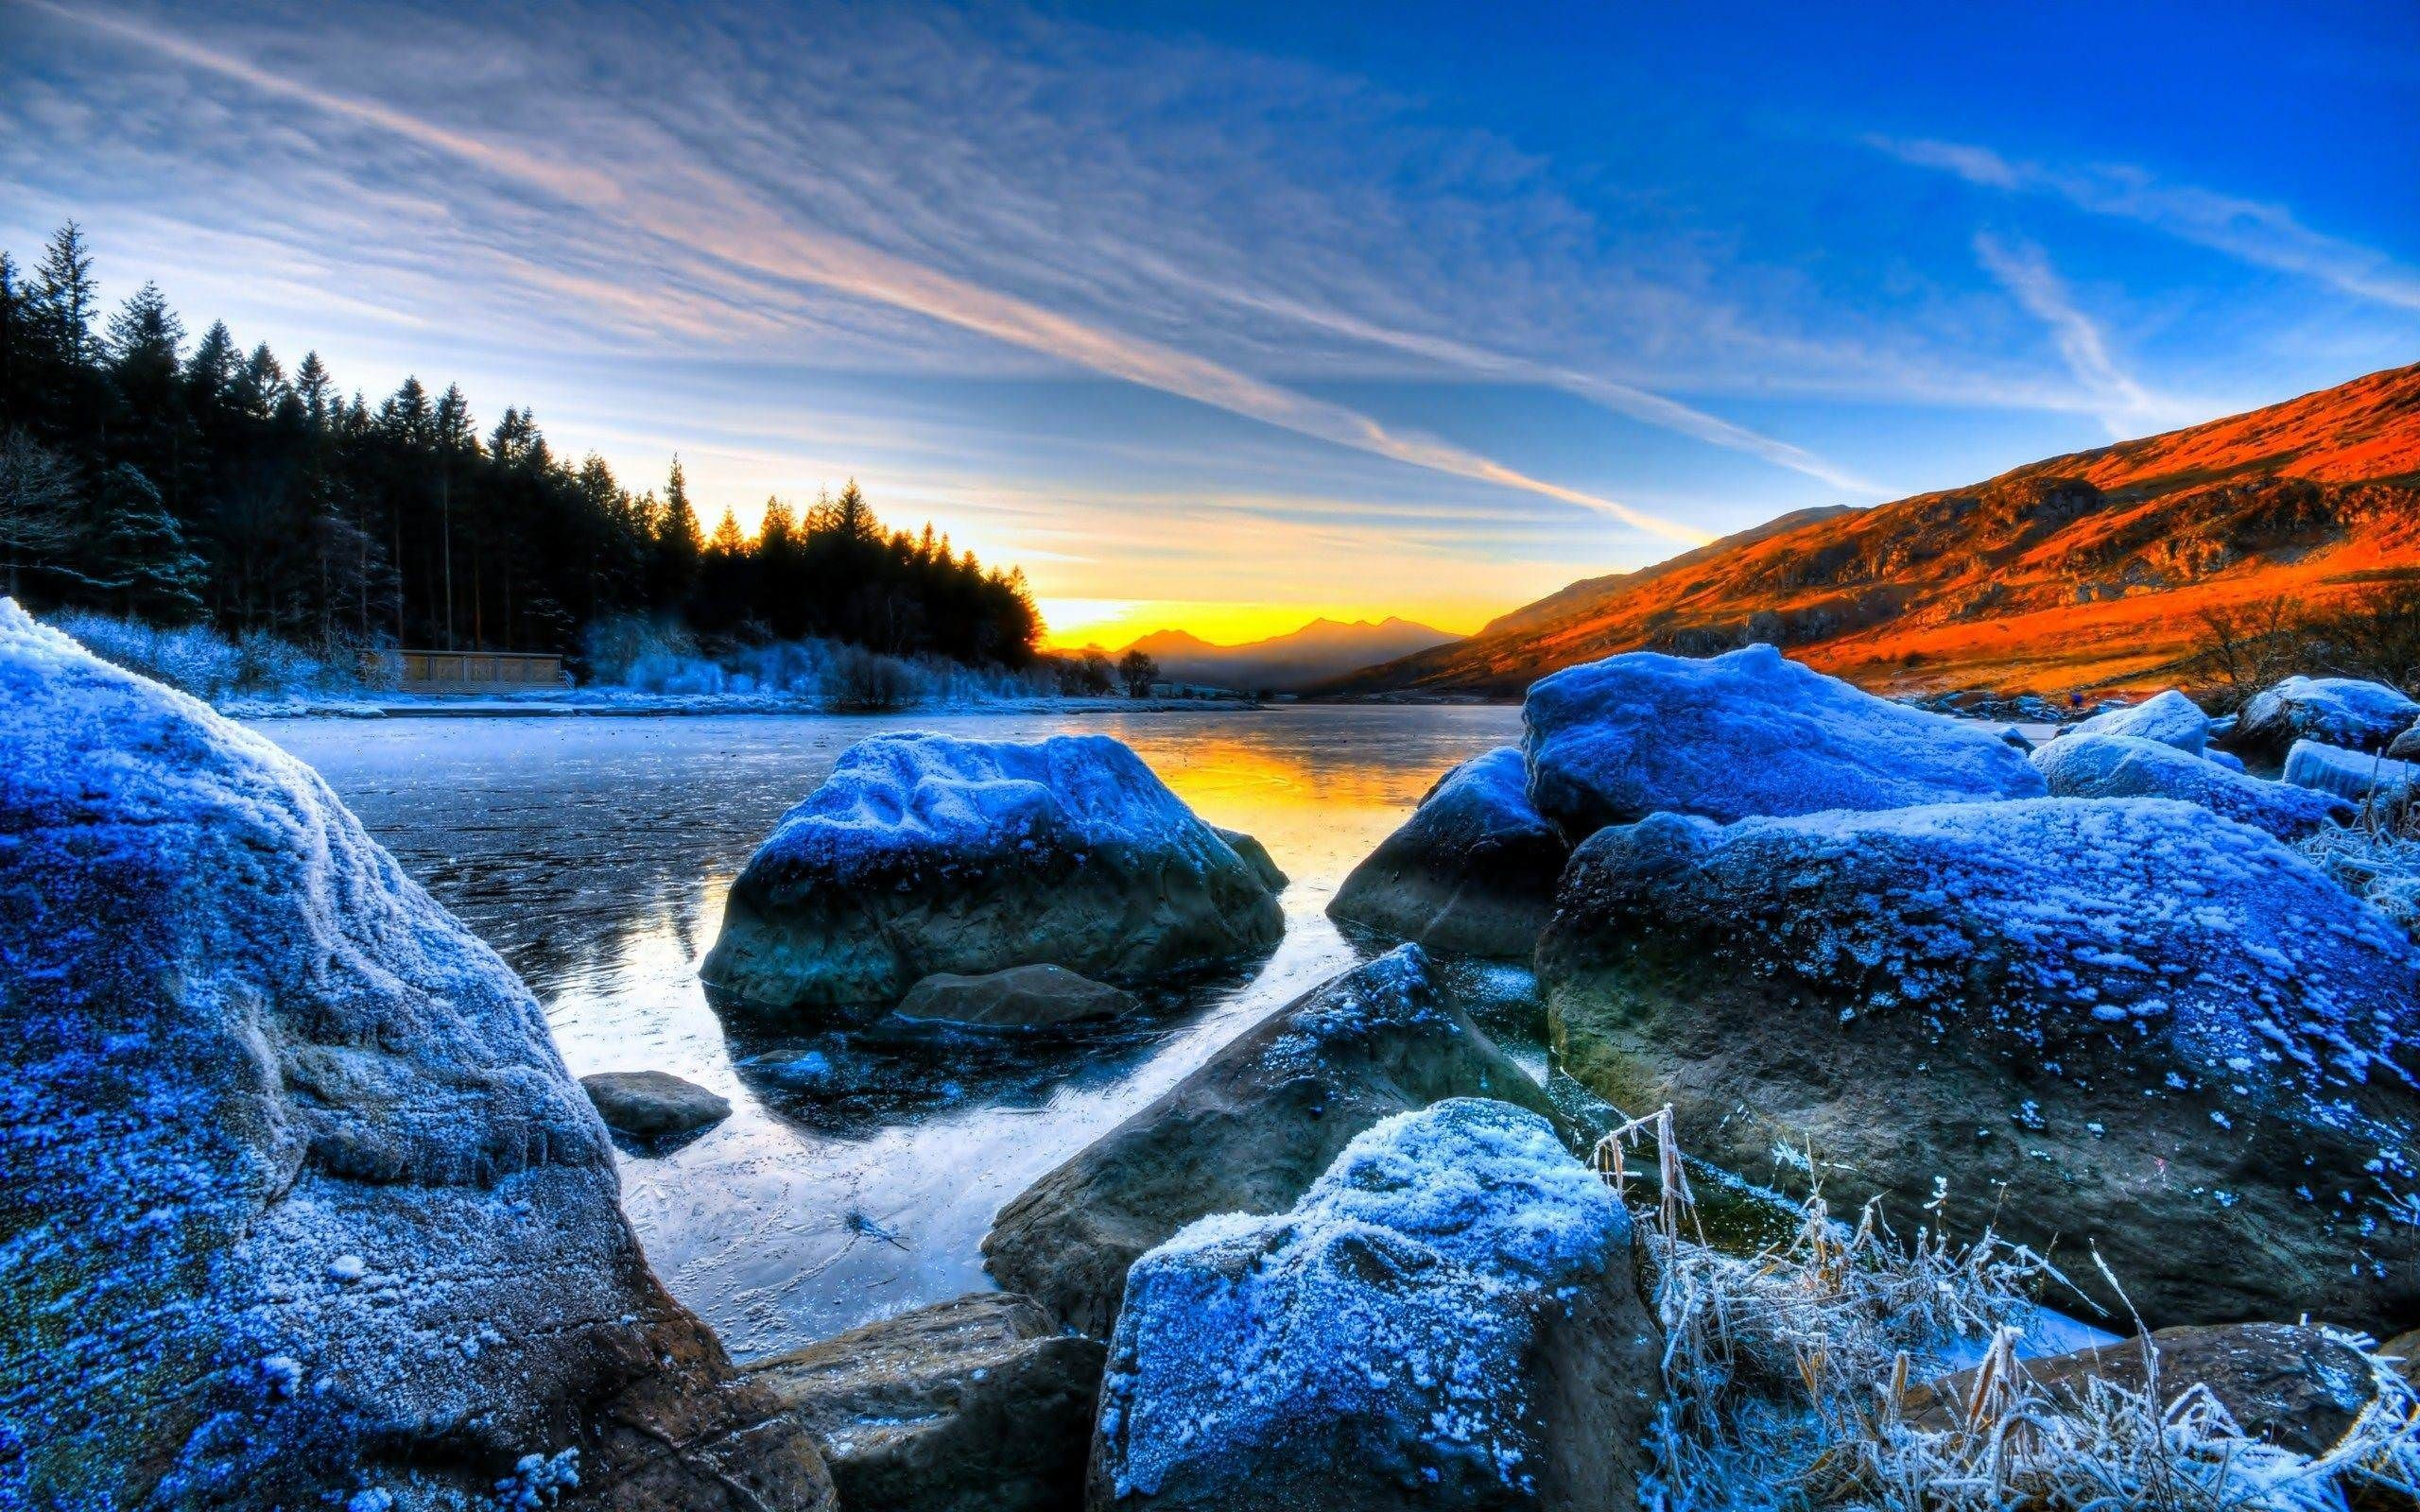 Res: 2560x1600, BW Scenic Wallpaper X Full HD Awesome Scenic